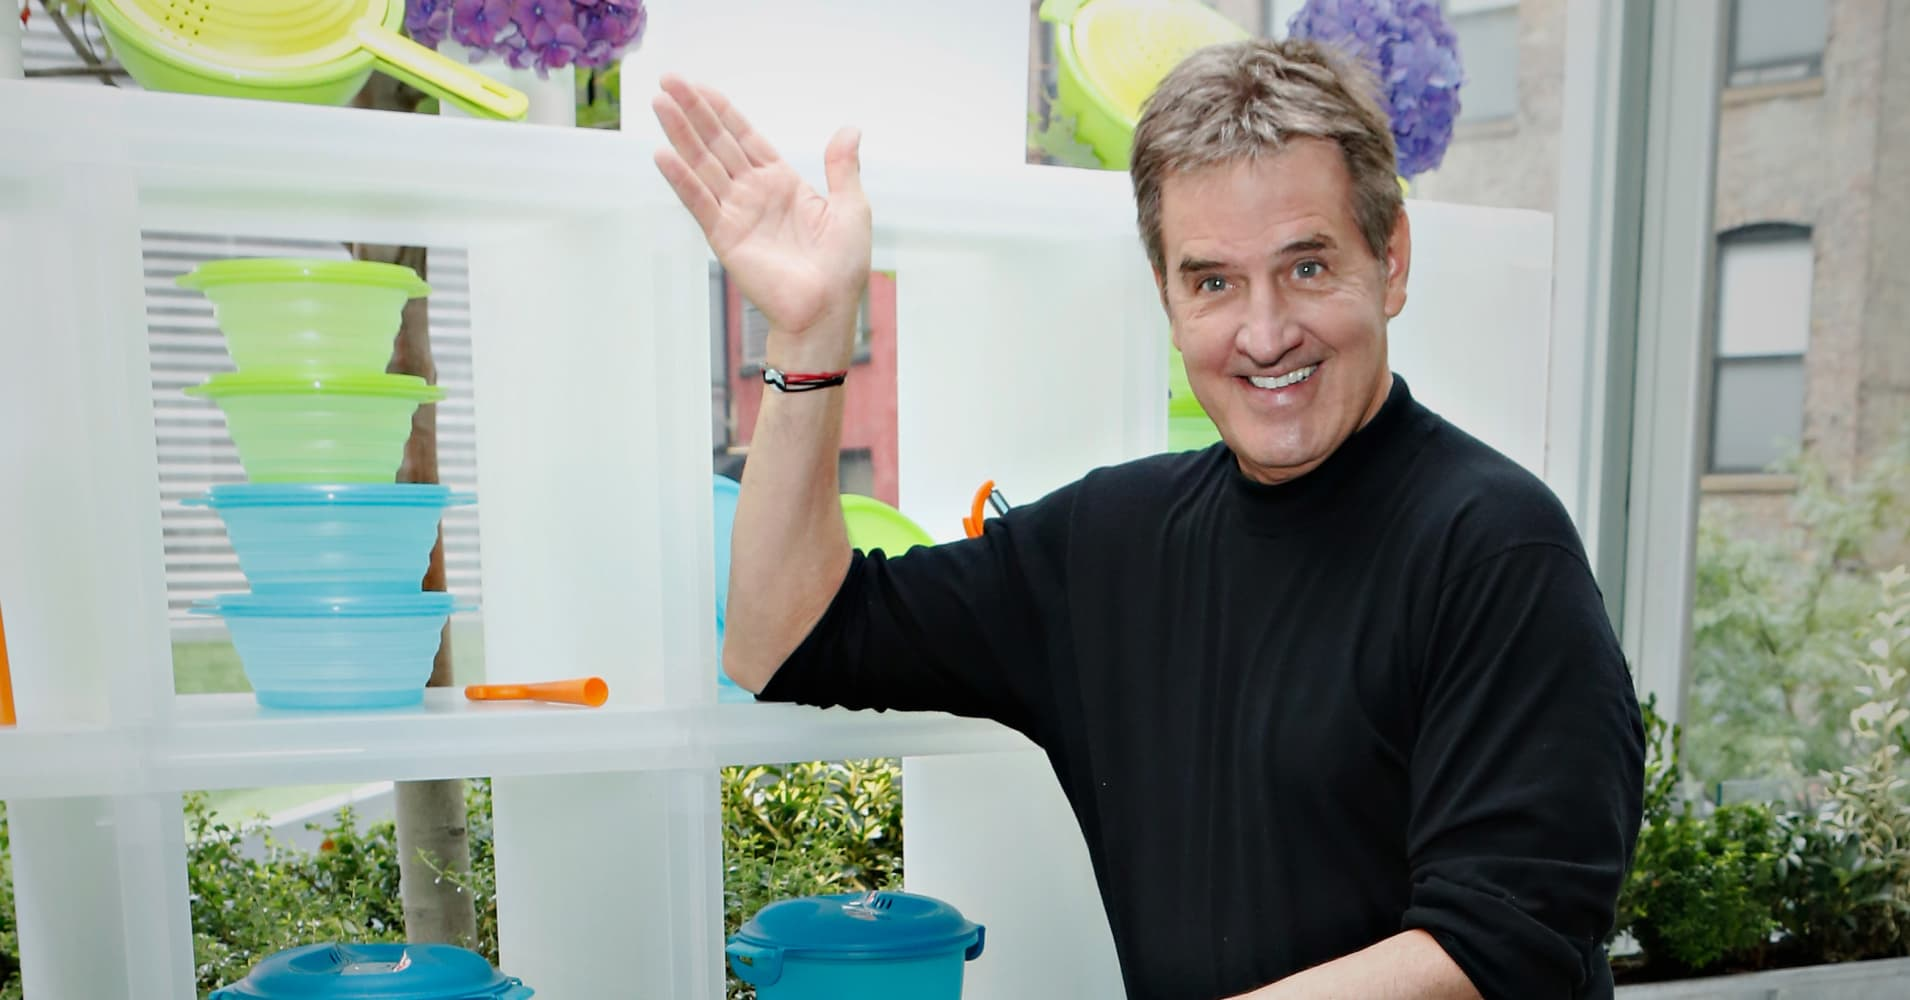 Rick Goings, CEO of Tupperware